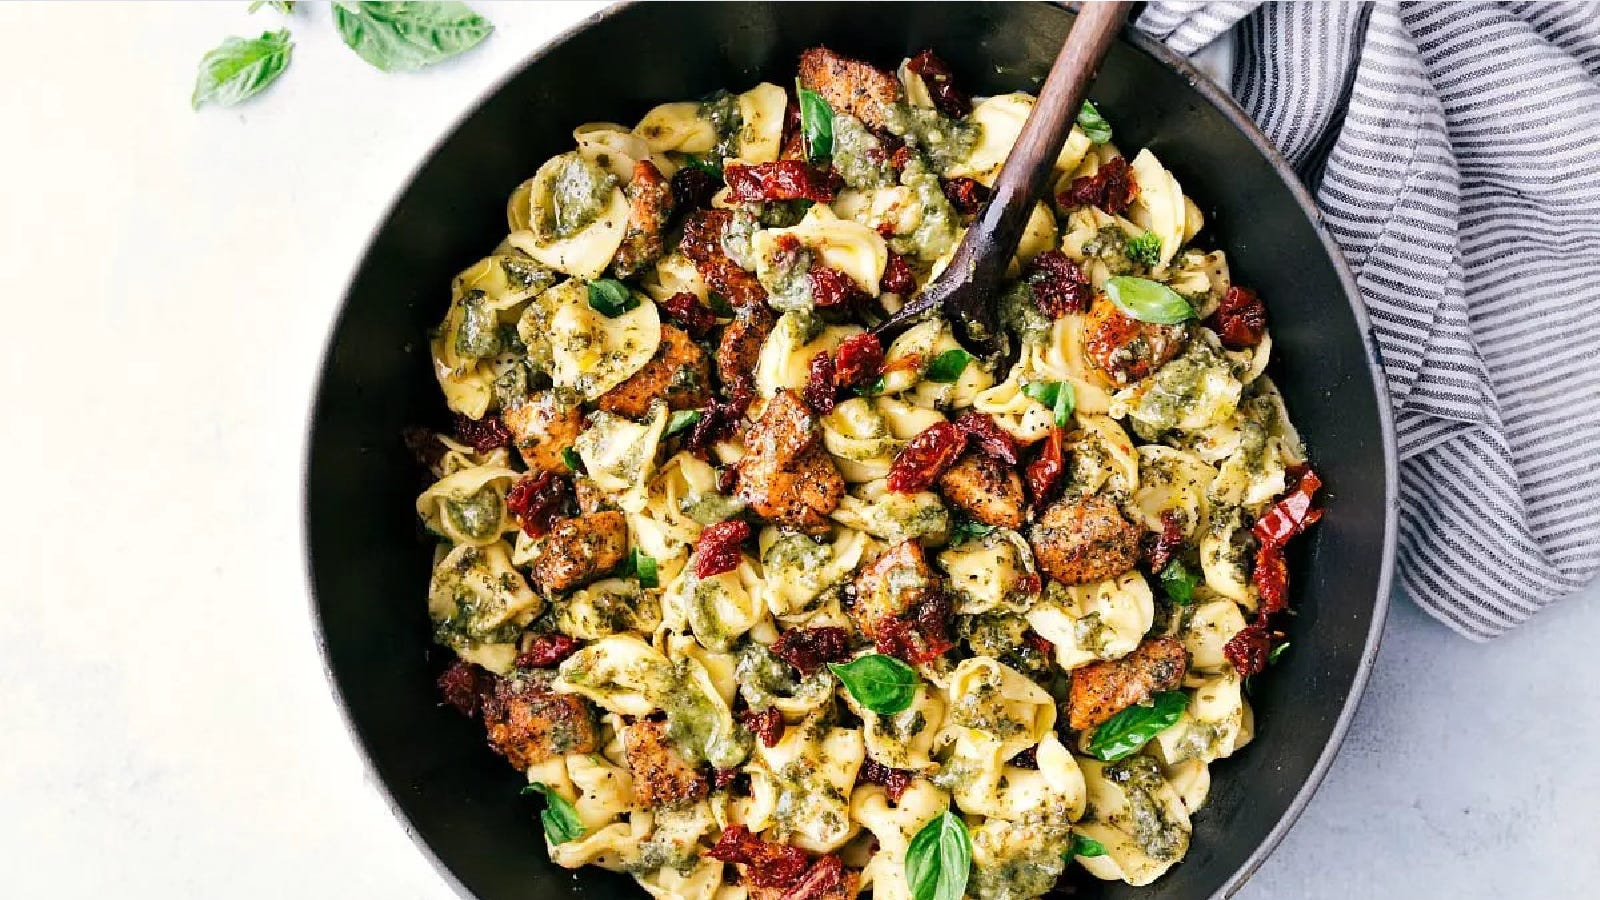 A large bowl filled with pesto chicken tortellini, accented with sundried tomatoes and fresh basil leaves.